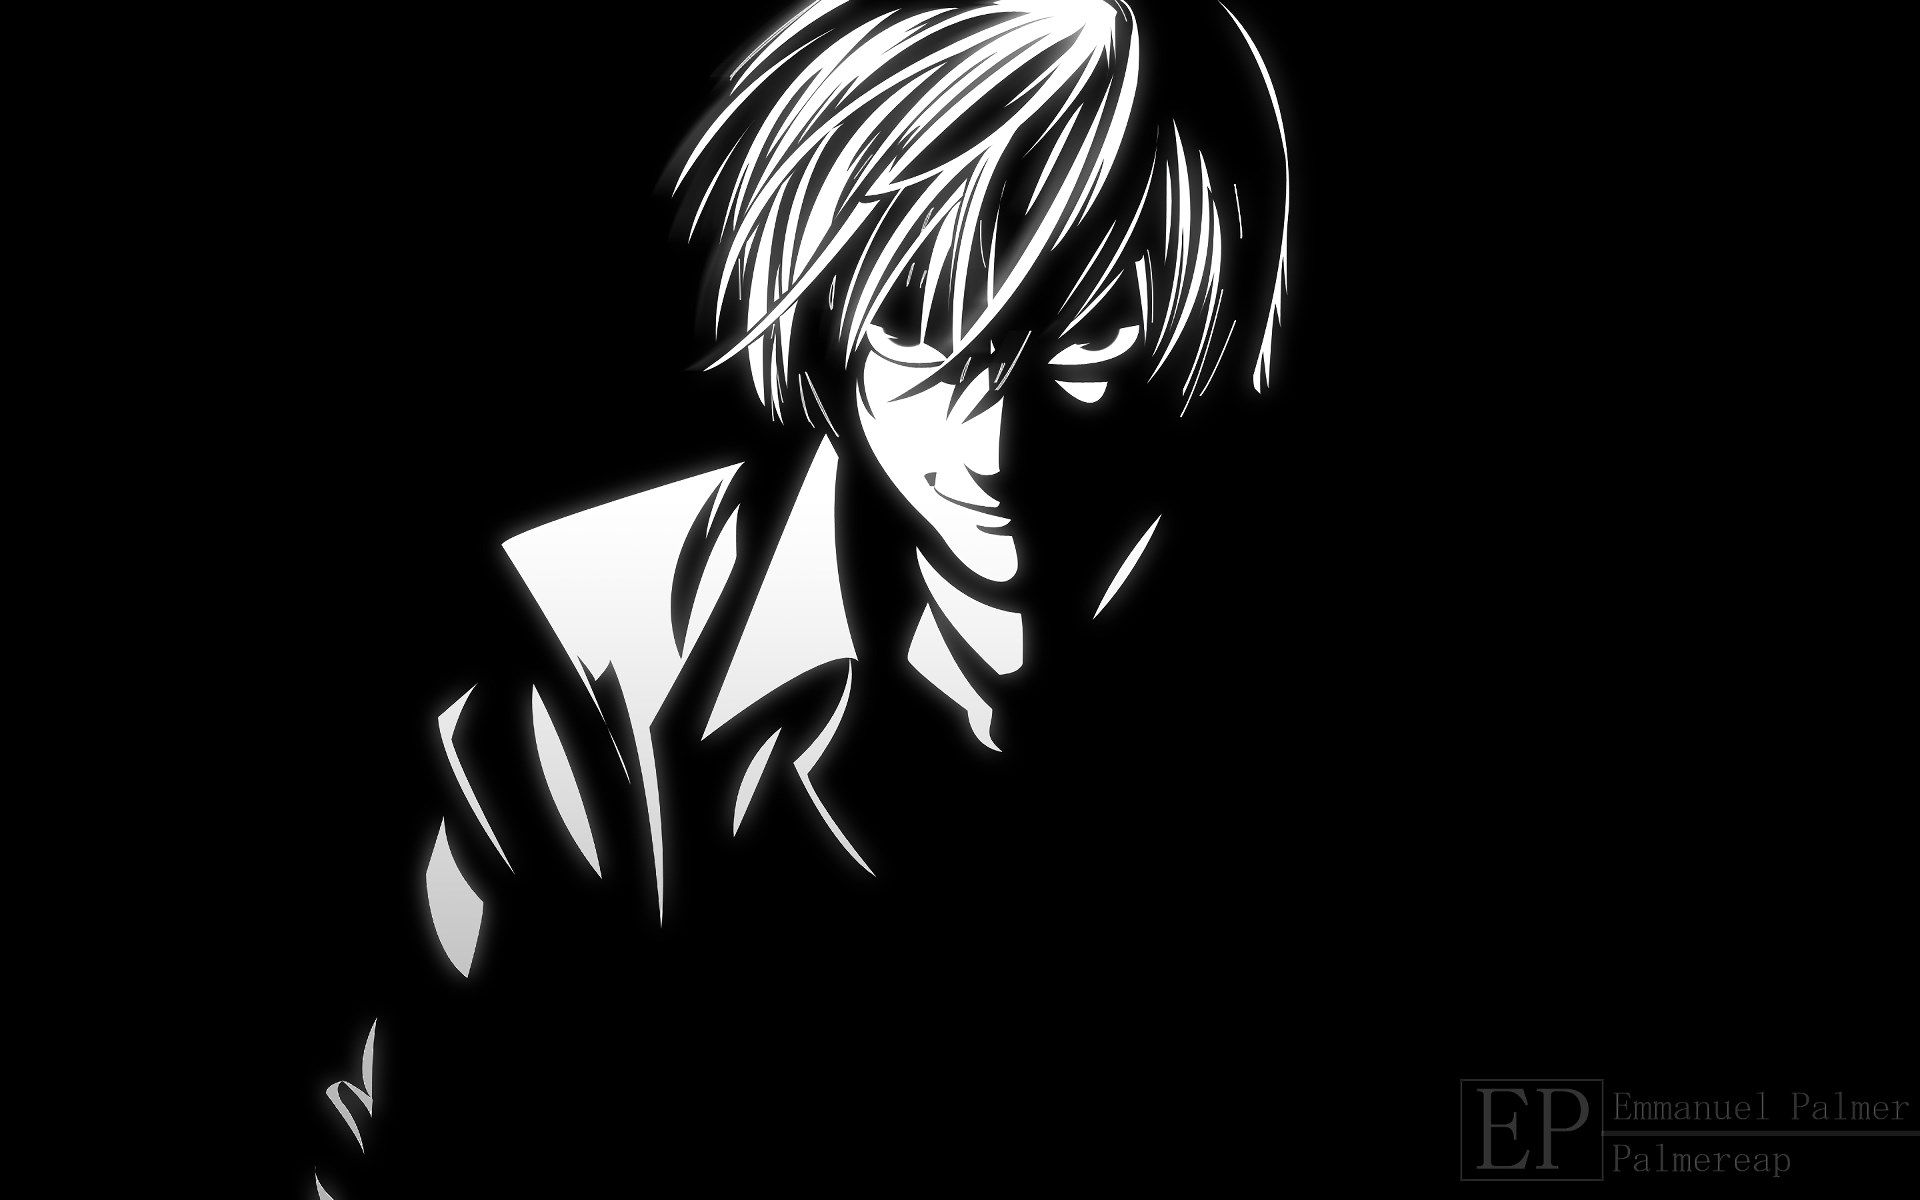 death note image for desktop hd, Rayburn Nail 2017-03-15 ...